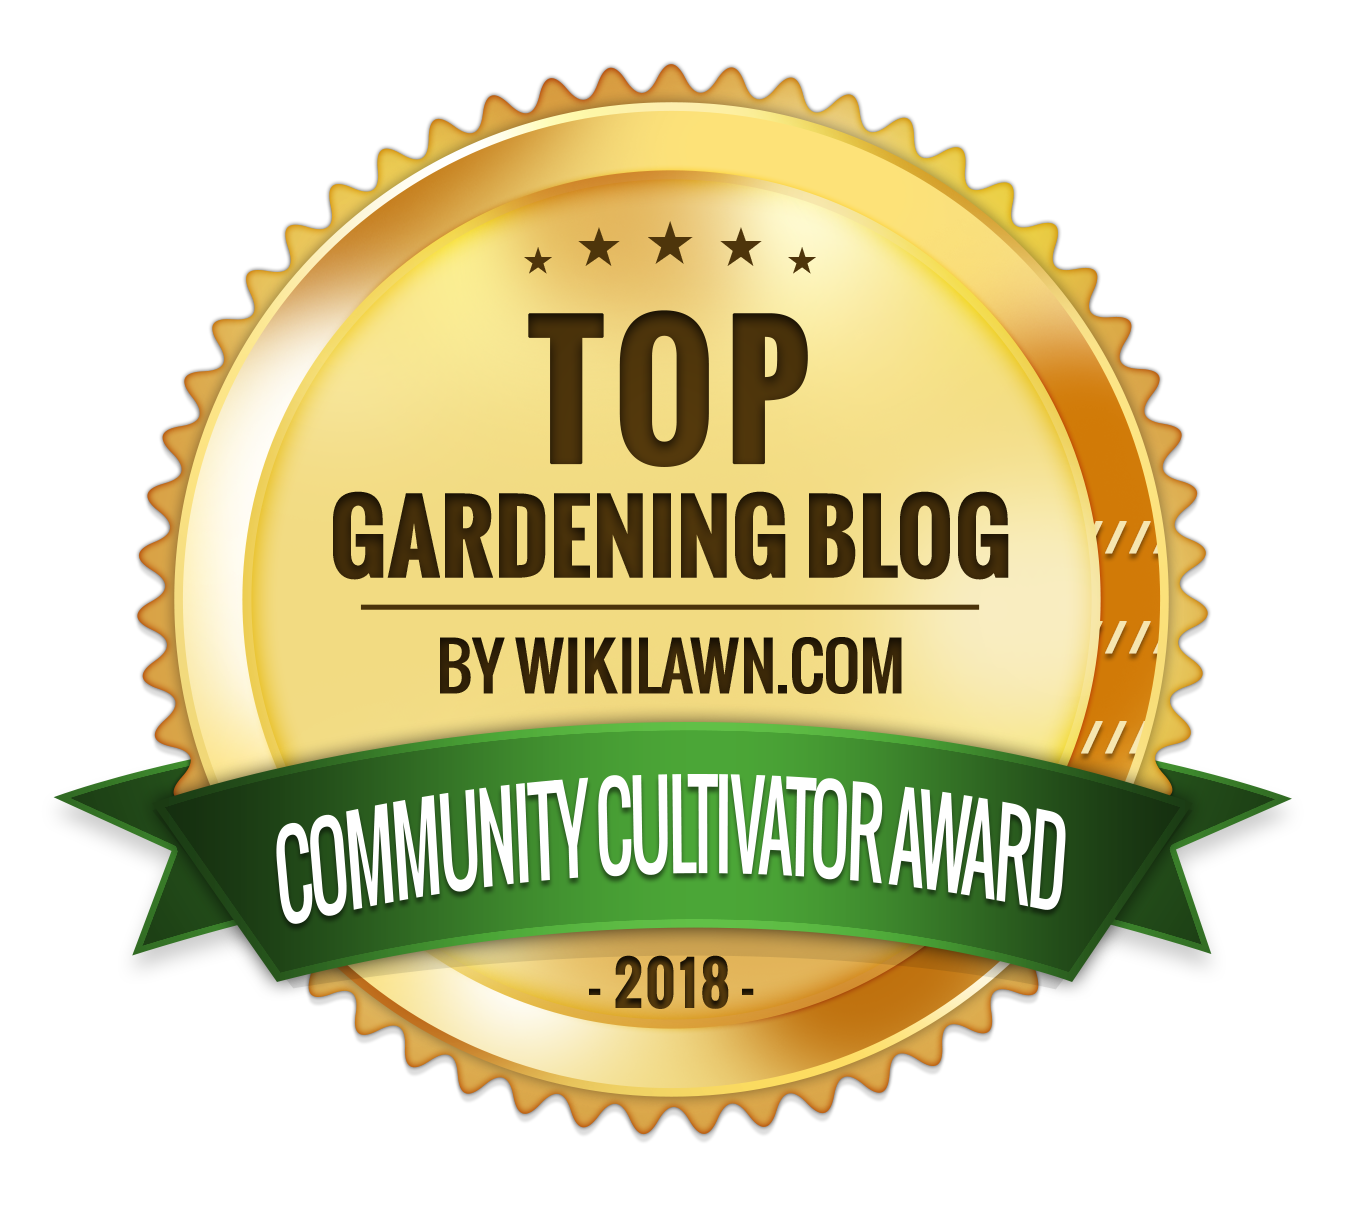 The 2018 Community Cultivator Awards Top Gardening Blogs Wikilawn